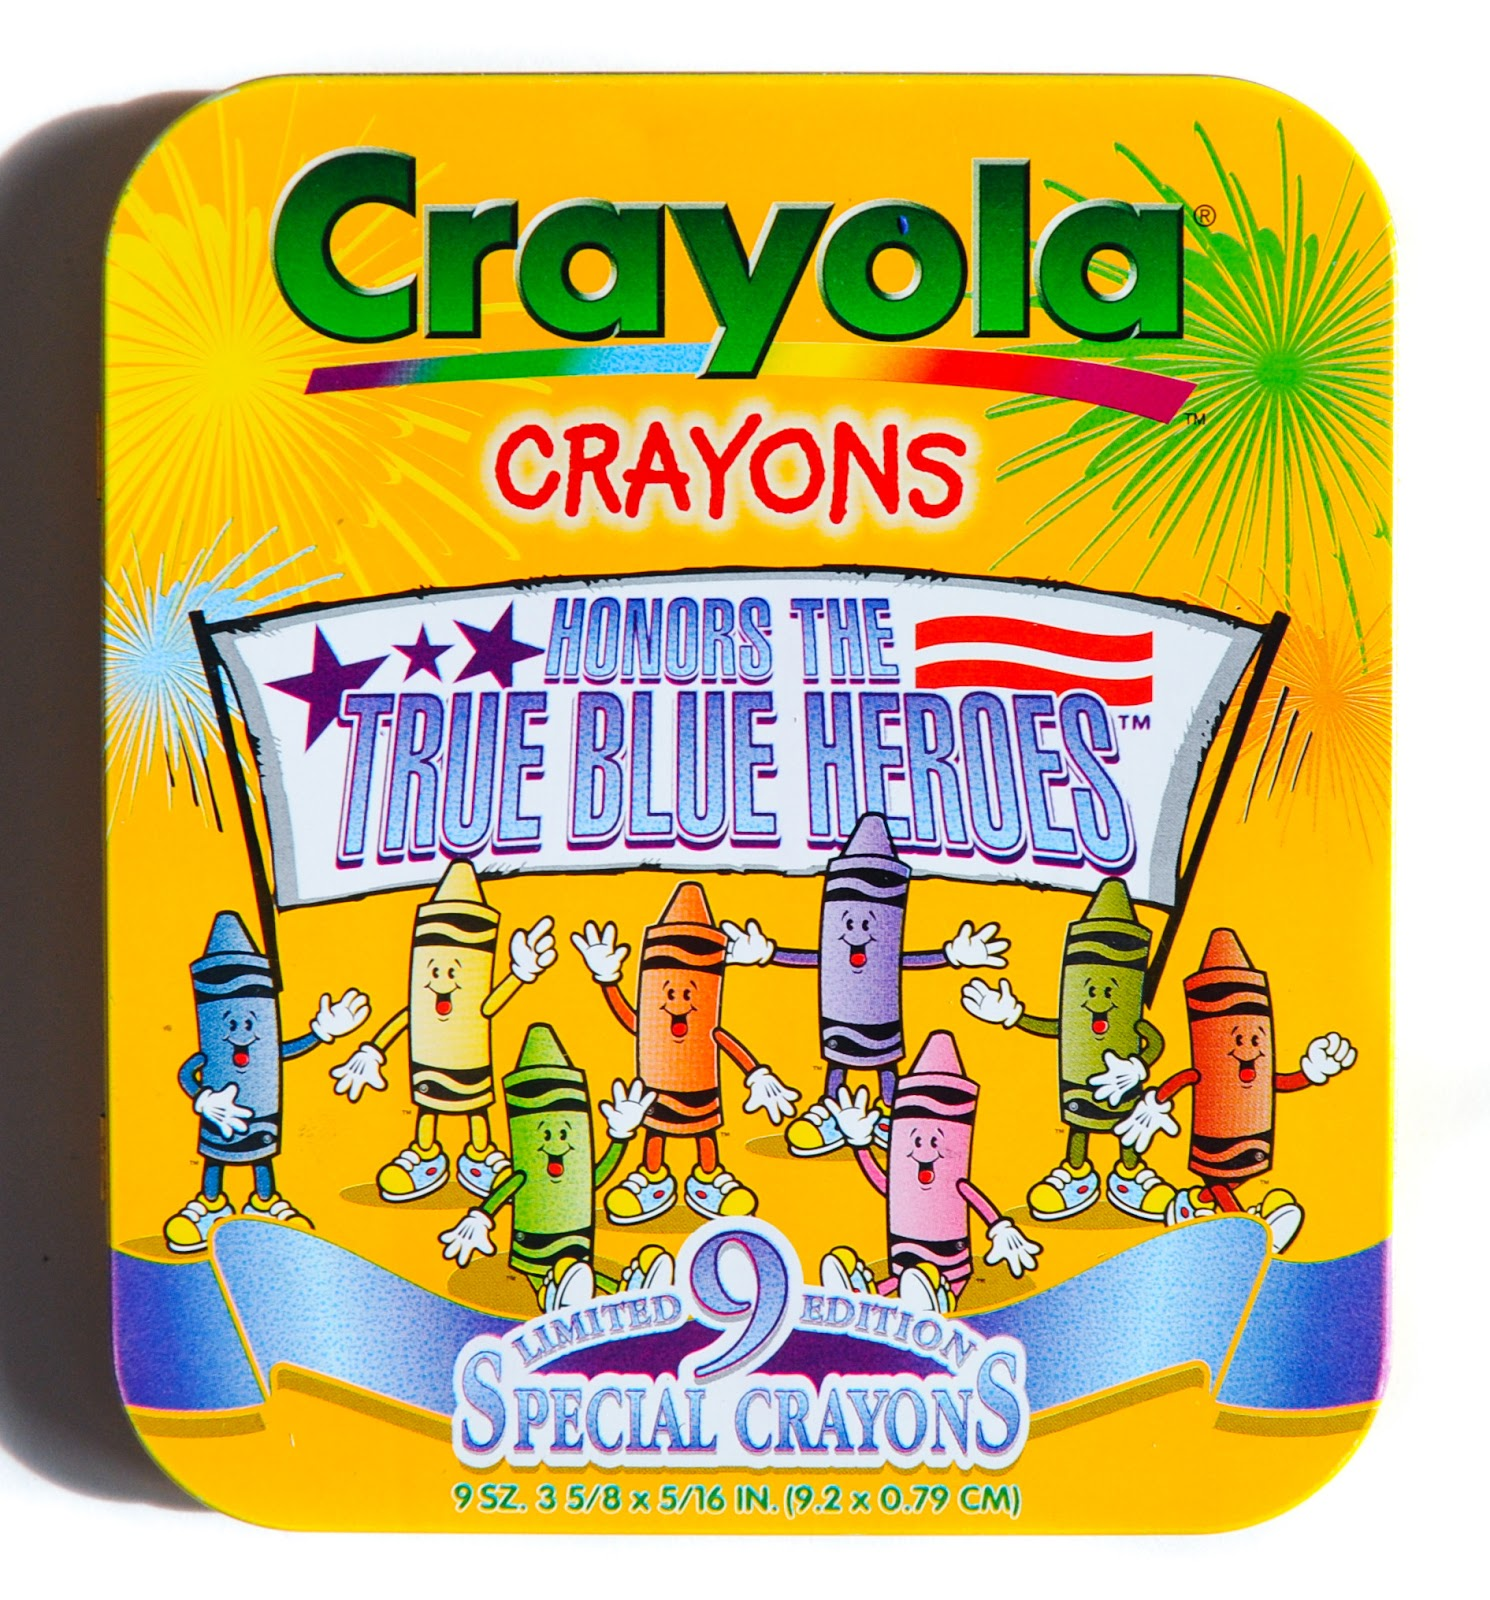 essays on crayola crayons Crayola crayons make life more colorful there are several questions we will go over what are survey clubs how can i avoid survey clubs that scam.